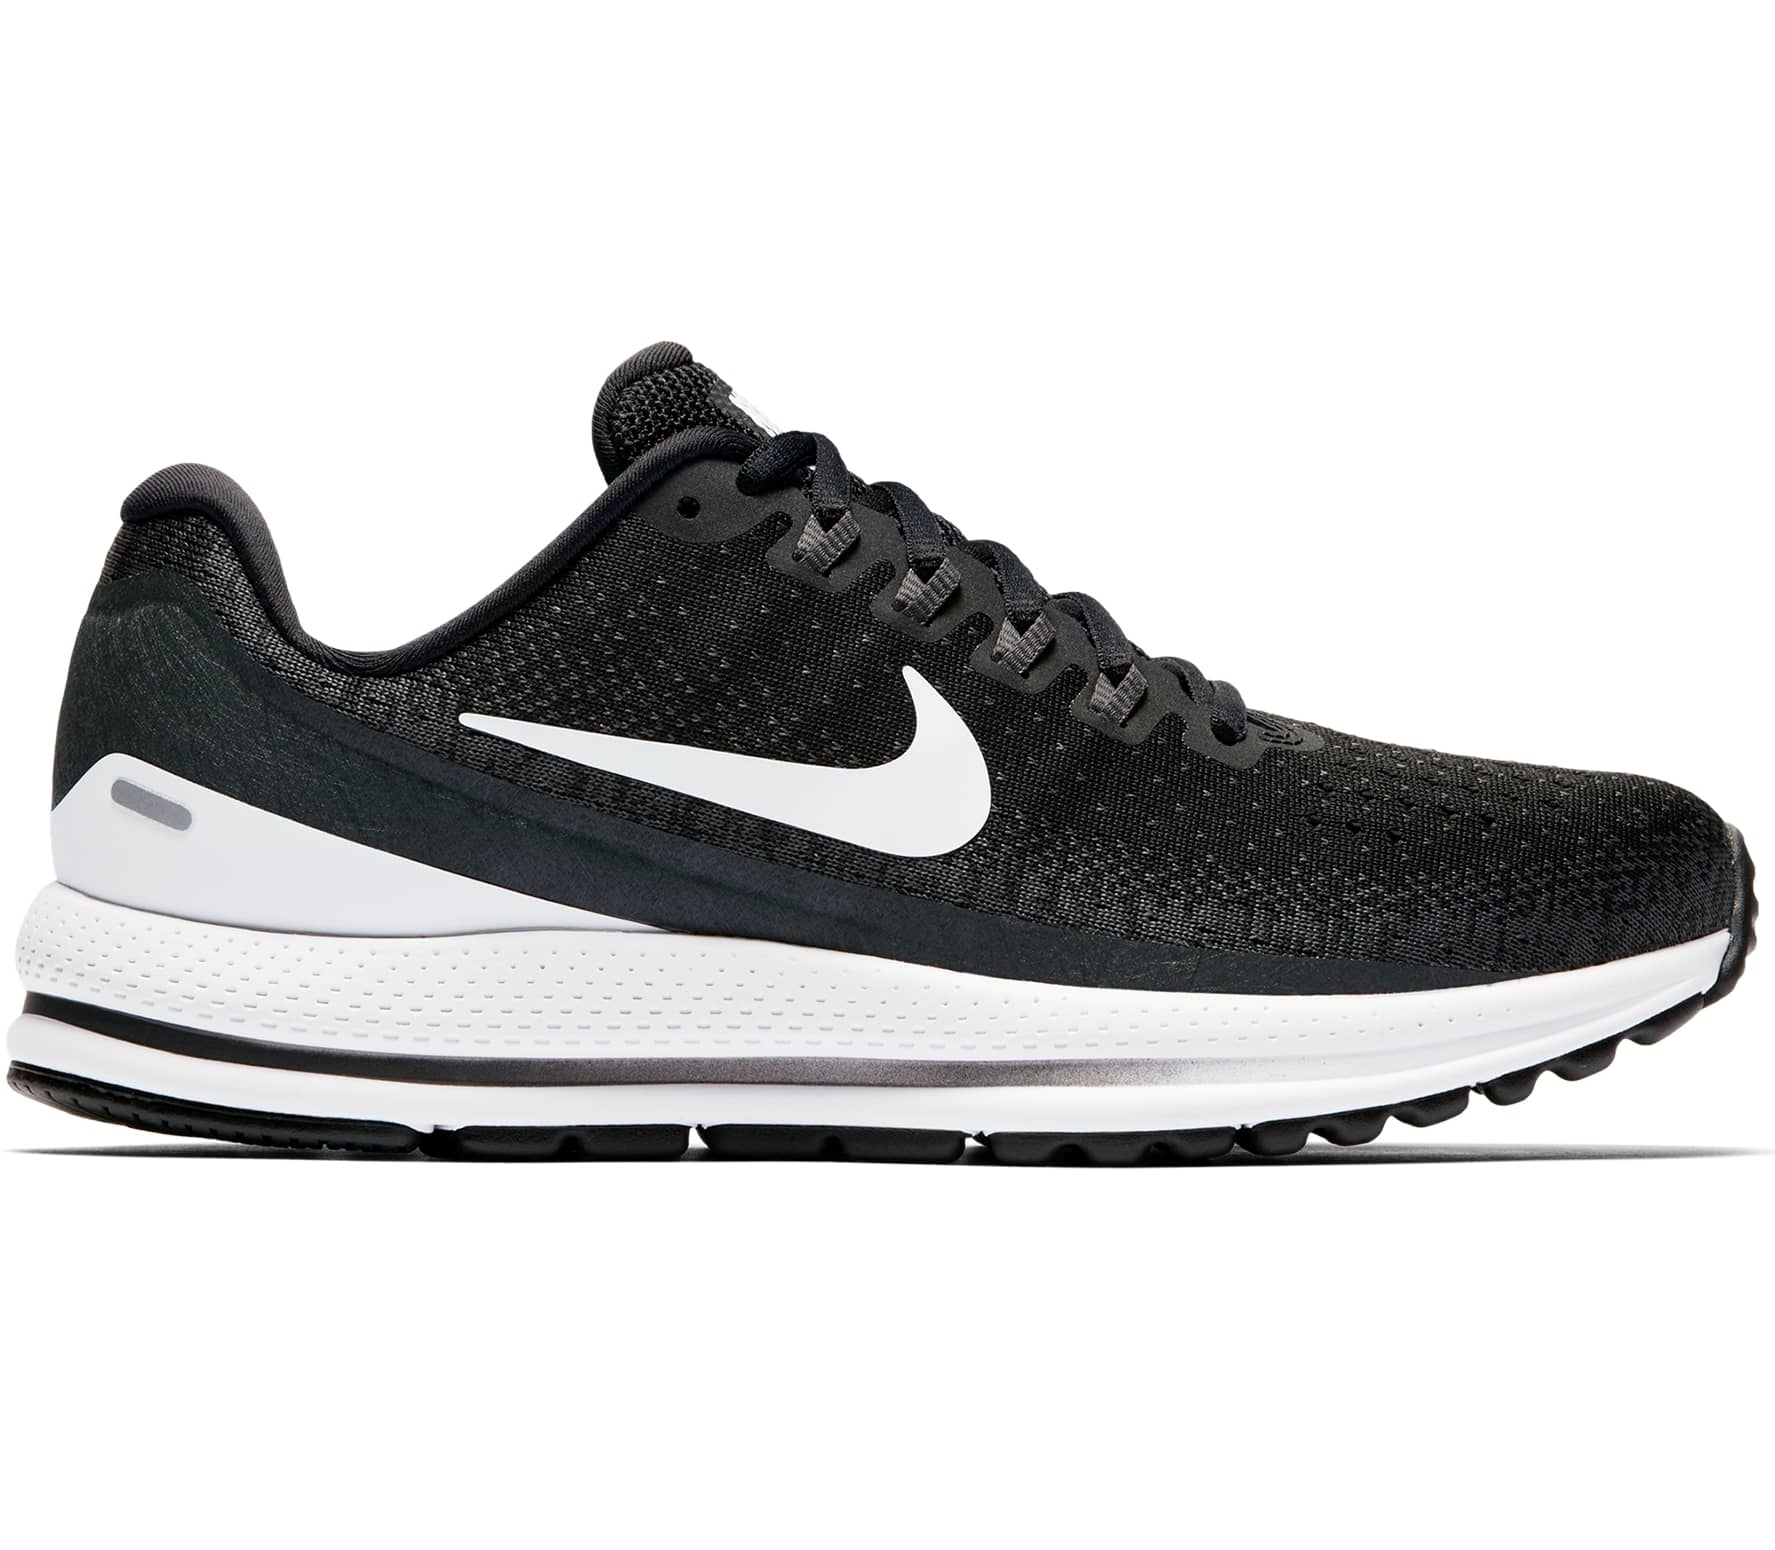 huge selection of 0a10e 2e291 Nike - Air Zoom Vomero 13 women s running shoes (black)